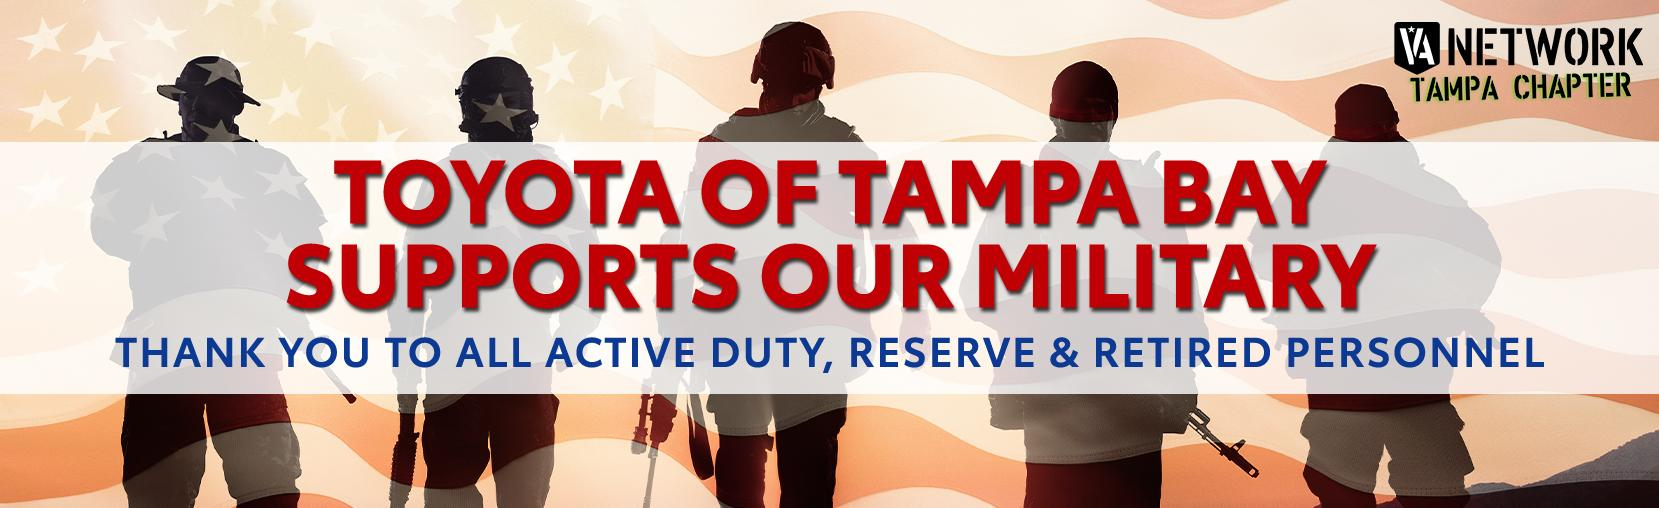 Toyota Of Tampa Bay Supports our military